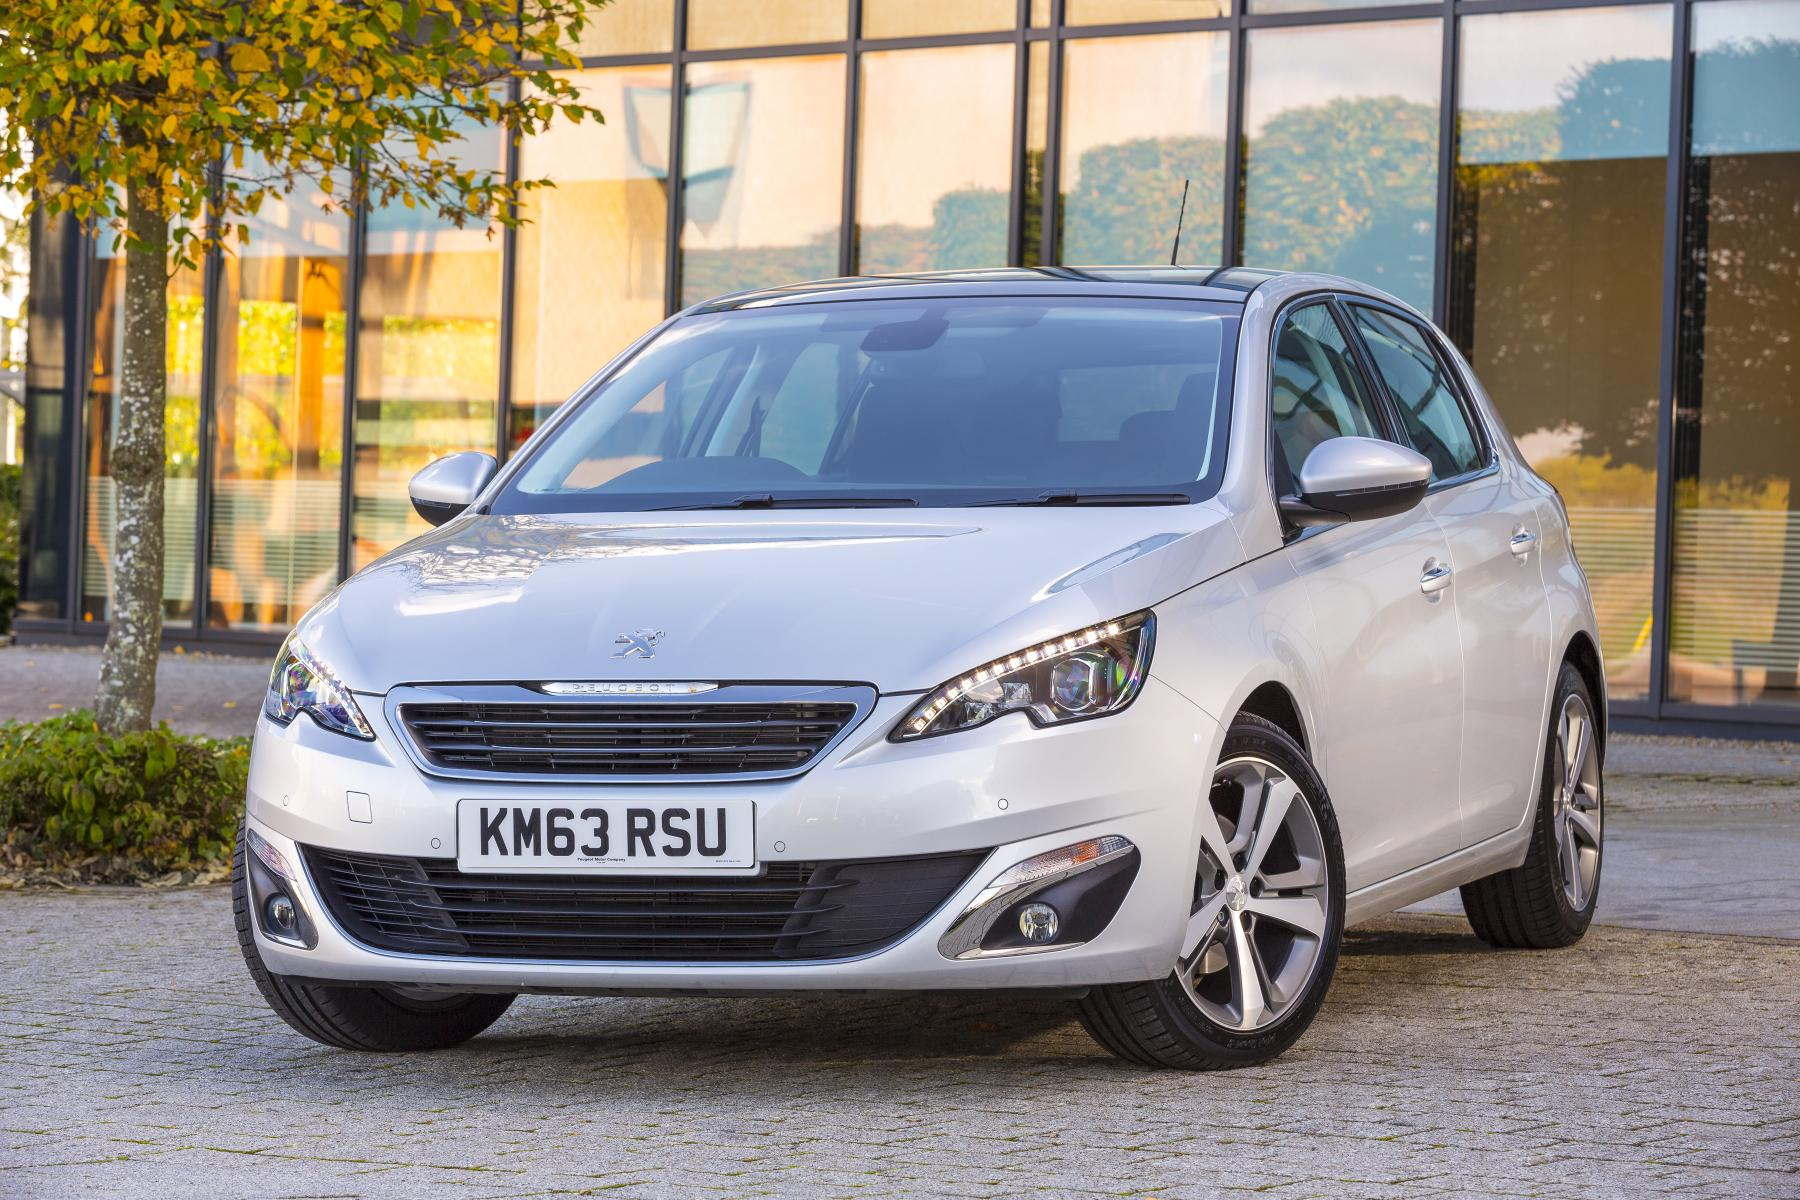 peugeot's new 308 compact hatchback goes on sale in britain